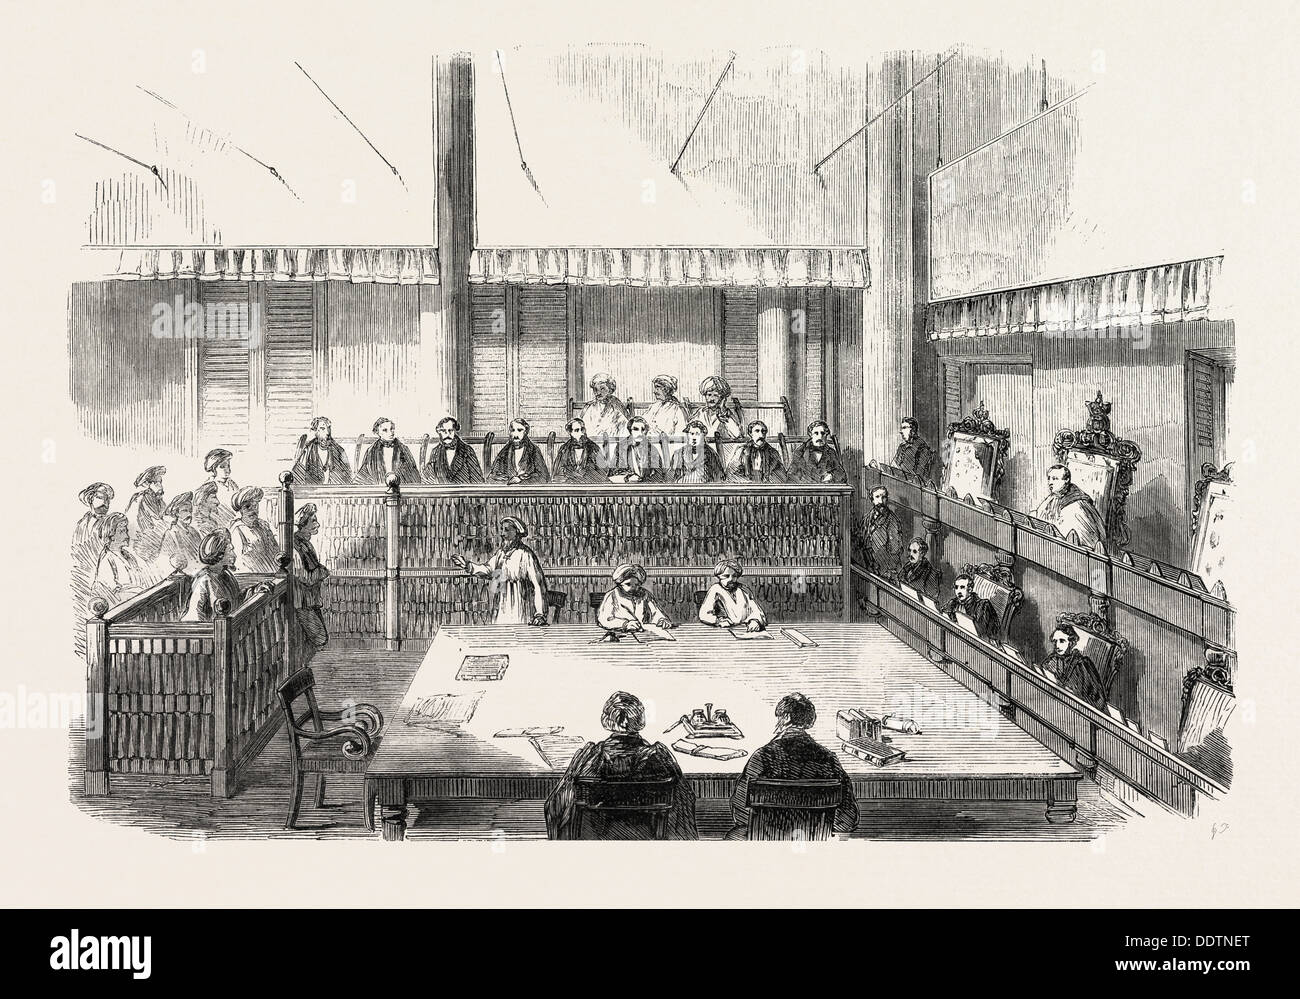 THE SUPREME COURT OF MADRAS, 1860 engraving - Stock Image